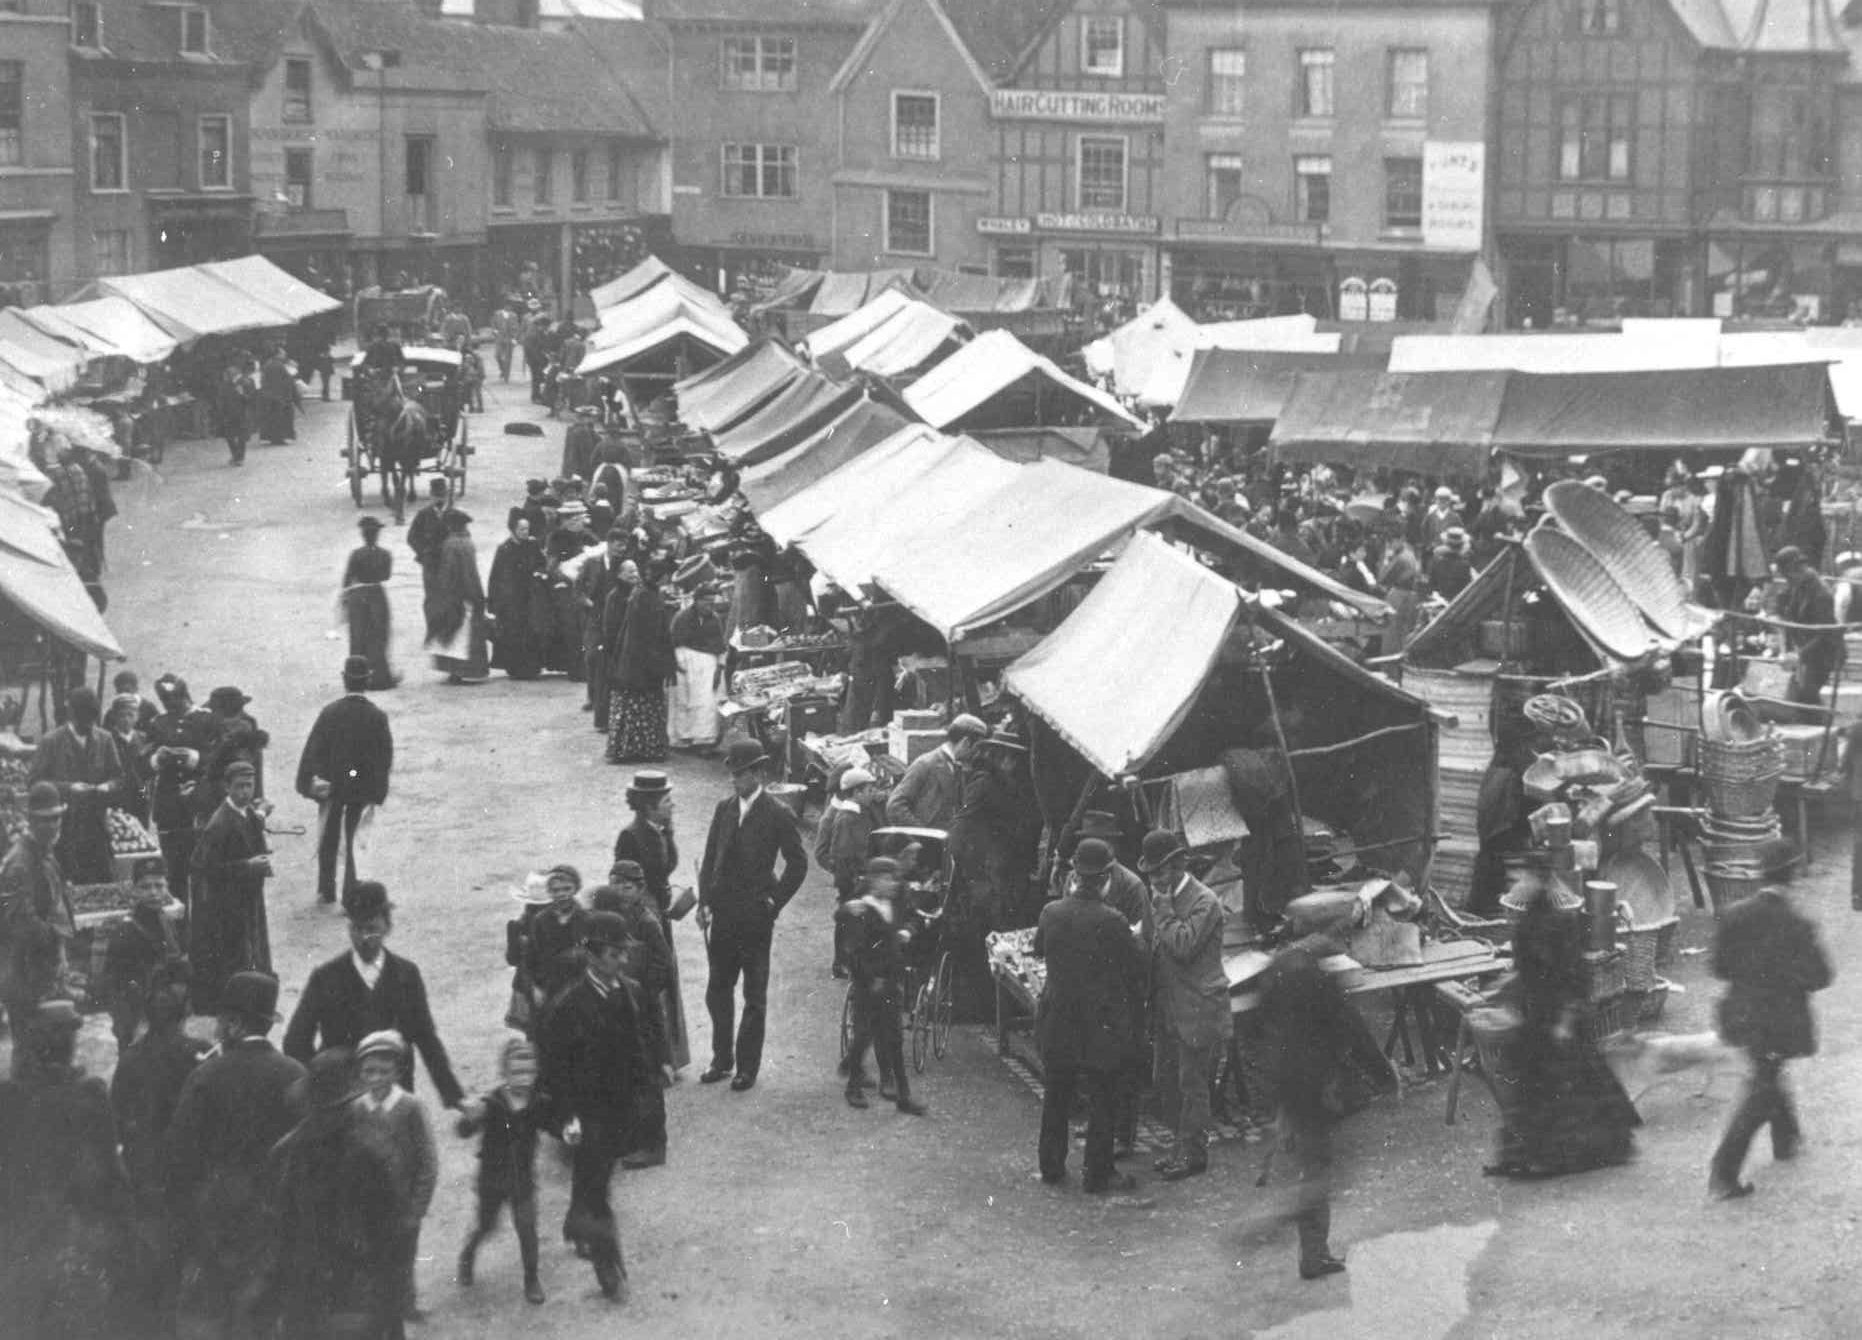 Images of Hitchin Market Place as it was in Victorian times (1837-1901)